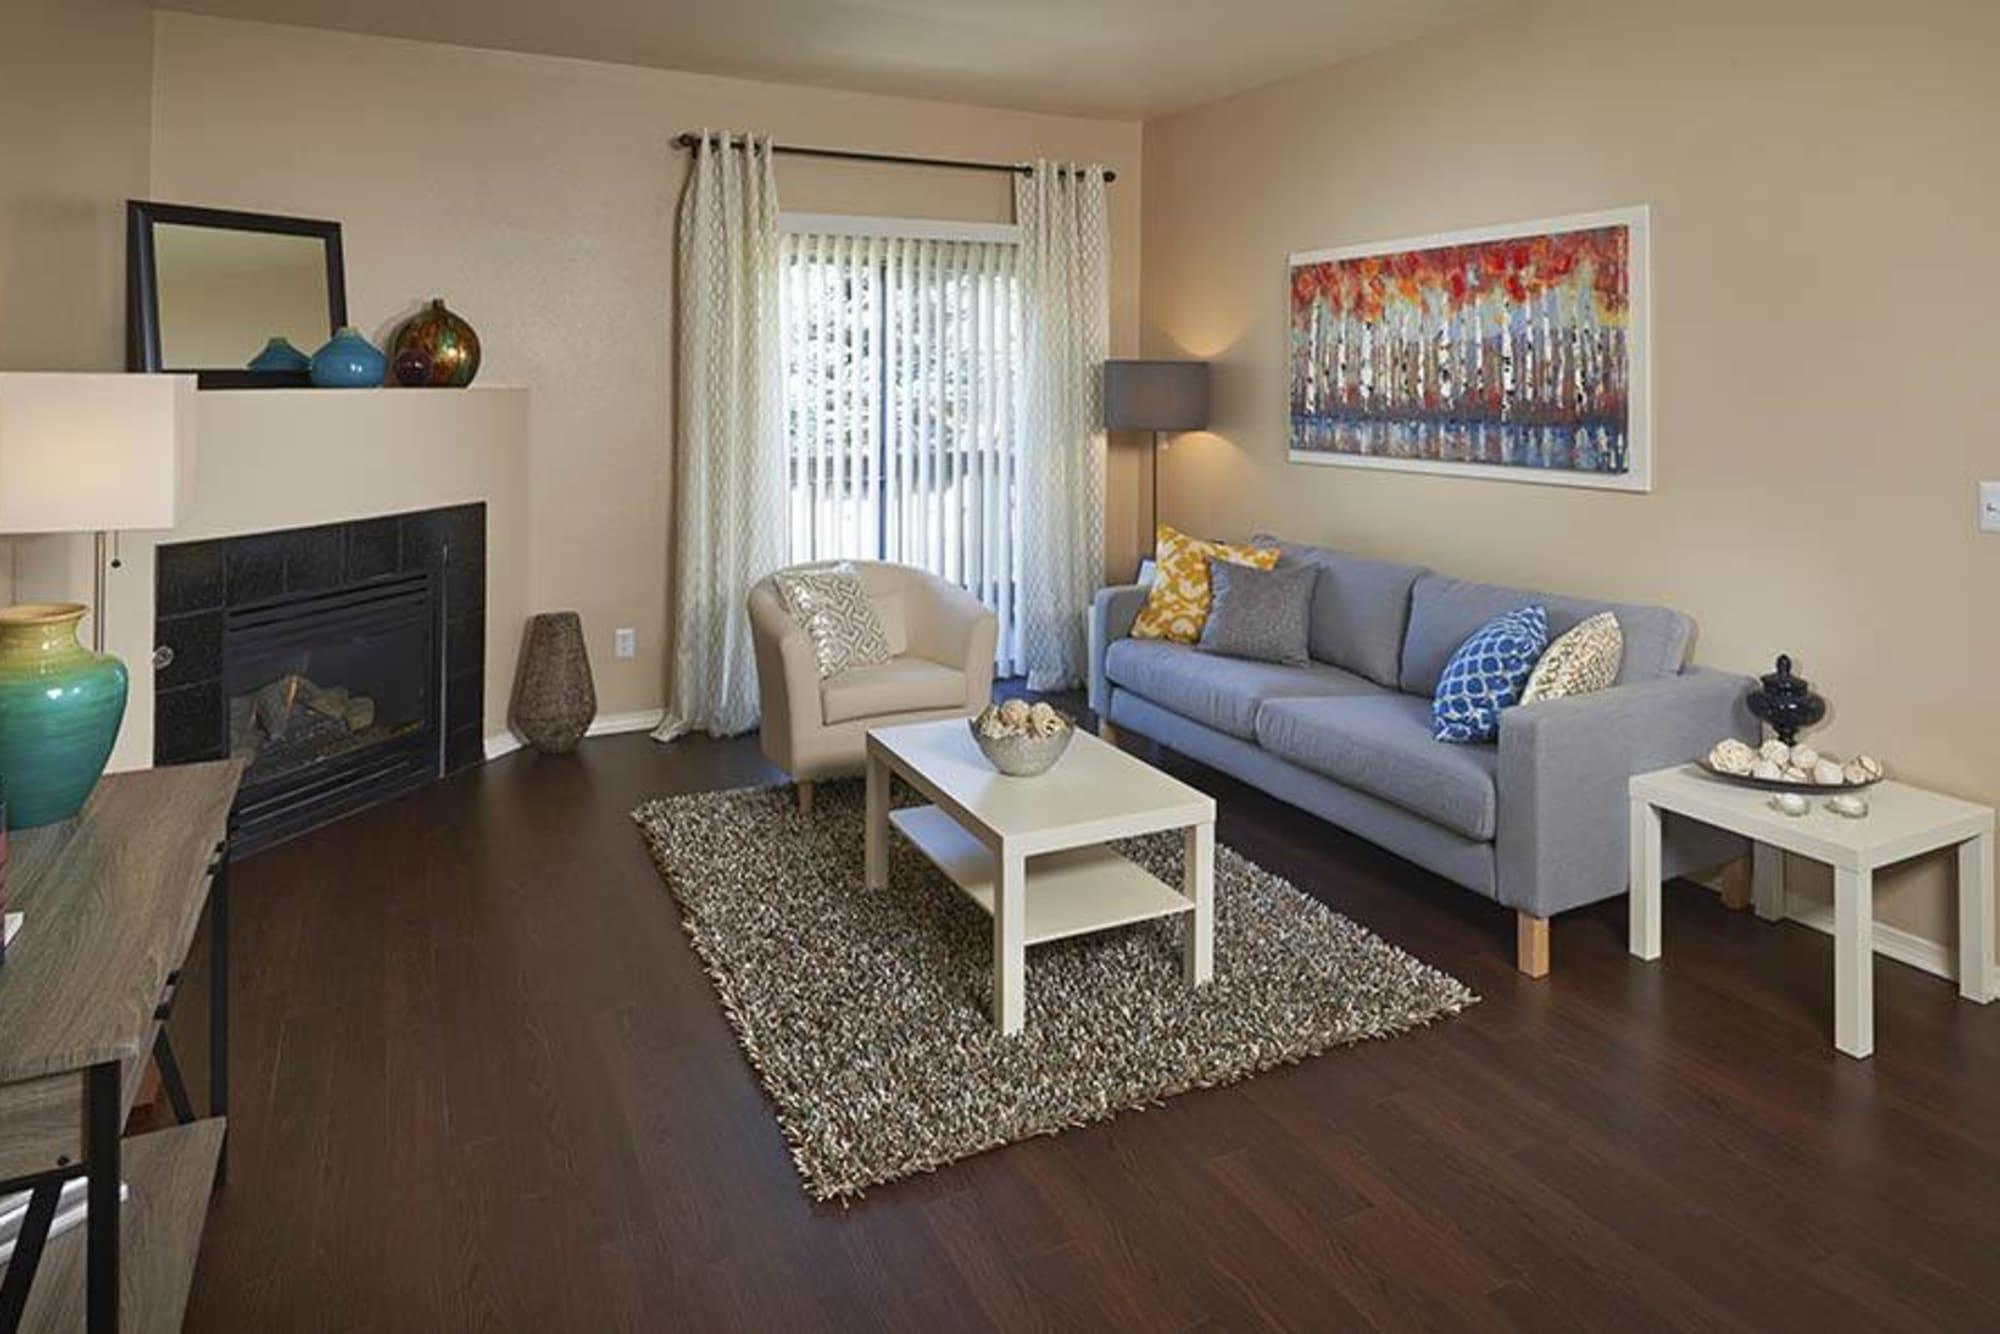 Living room with a fireplace at Crossroads at City Center Apartments in Aurora, Colorado